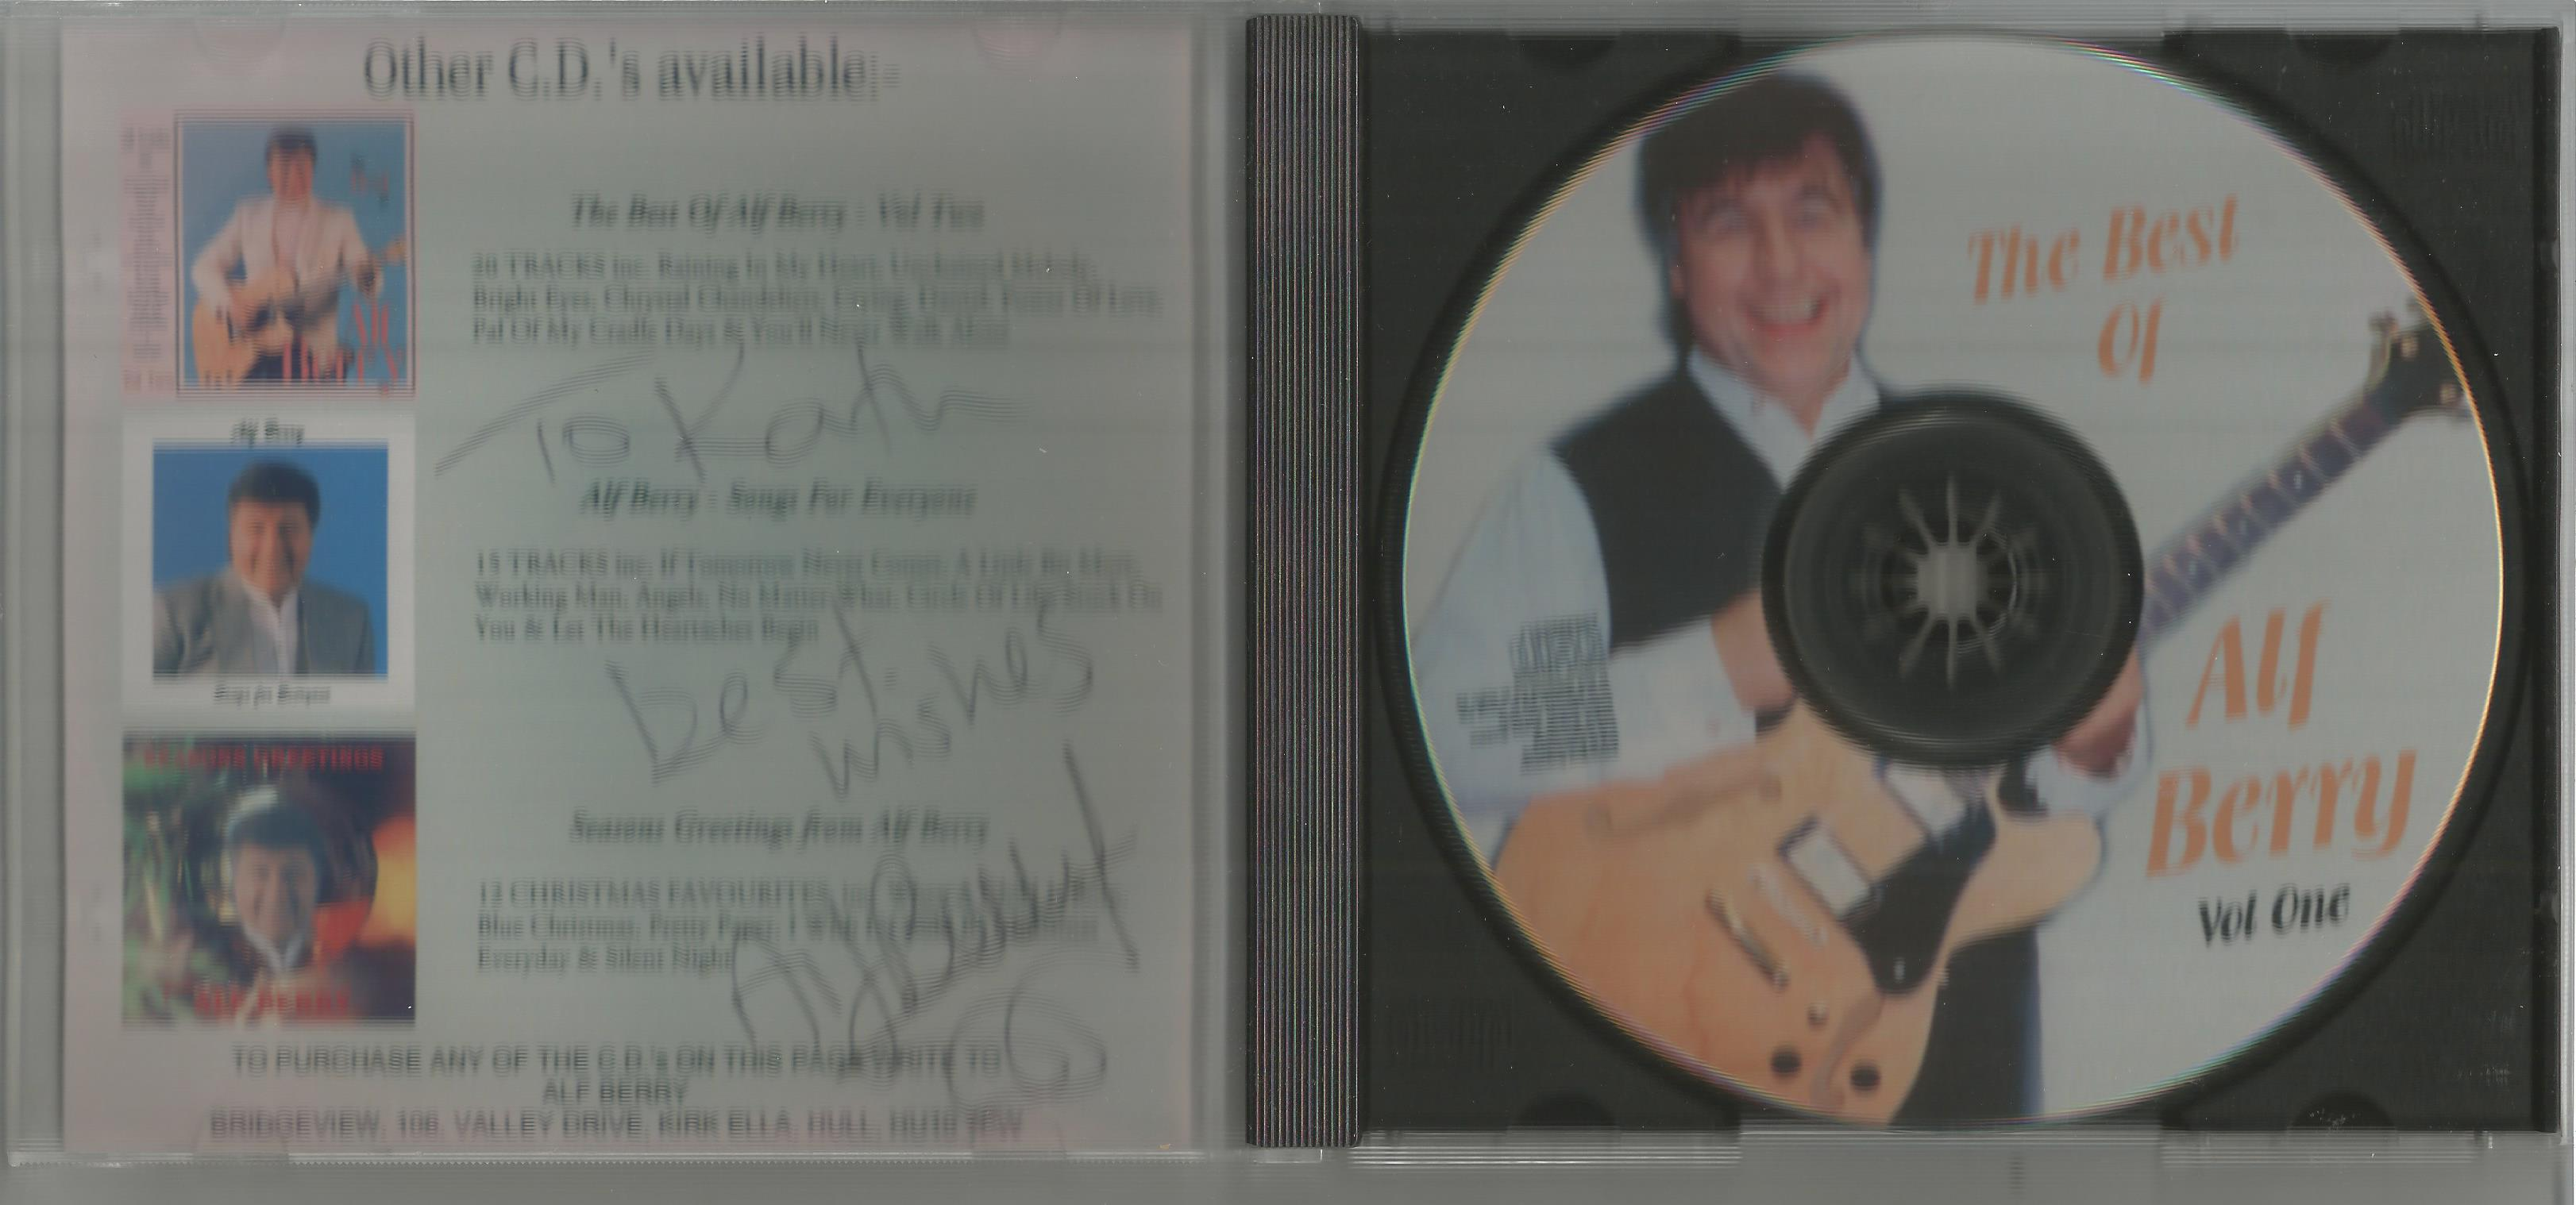 6 Signed CDs Including Michael Graham (Inspirations) Disc Included, Hazel O'Connor (The Bluja